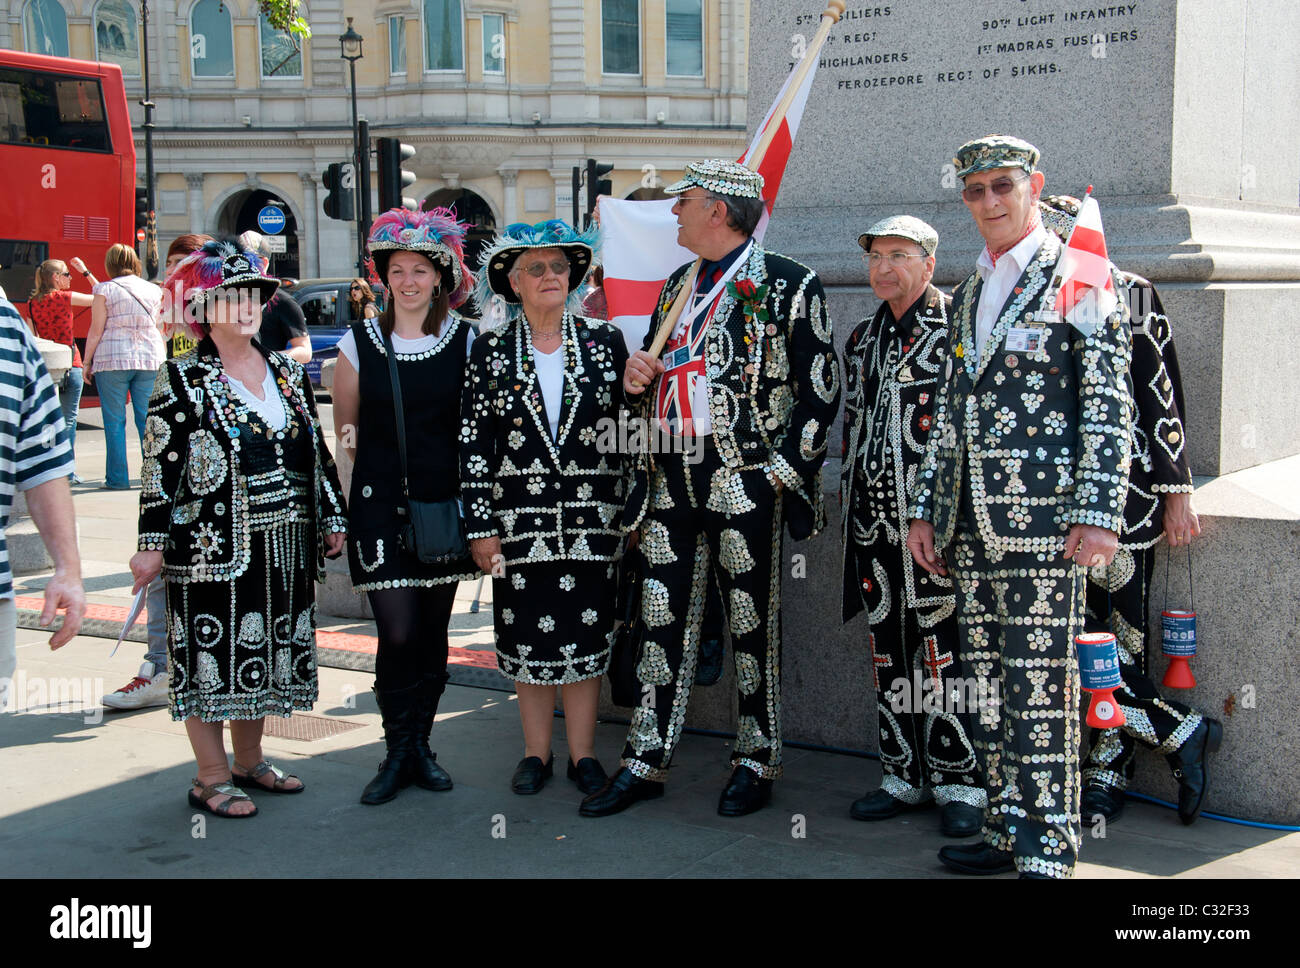 Pearly kings and and queens, Trafalgar Square, London England UK - Stock Image